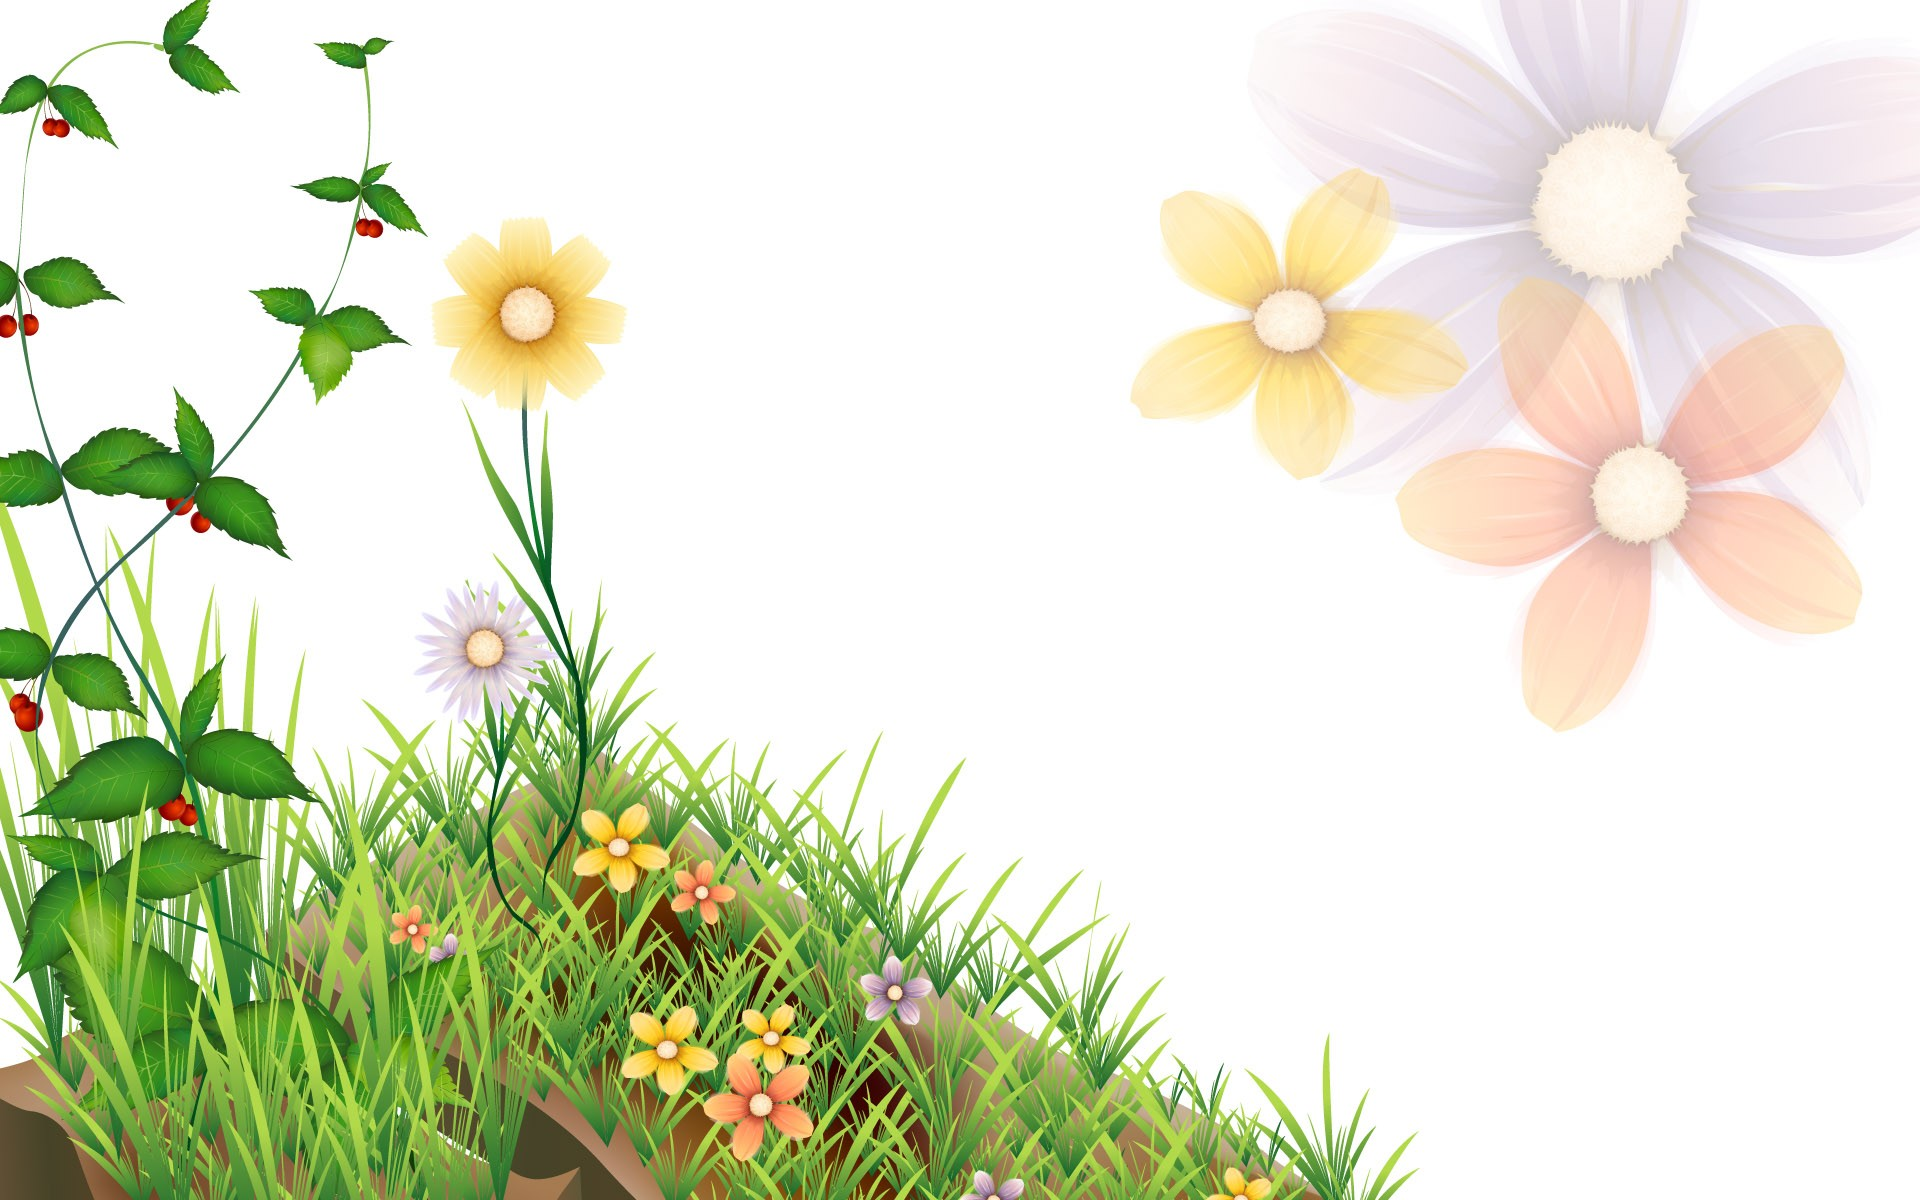 Nature clipart spring time Spring wallpapers desktop wallpaper hd